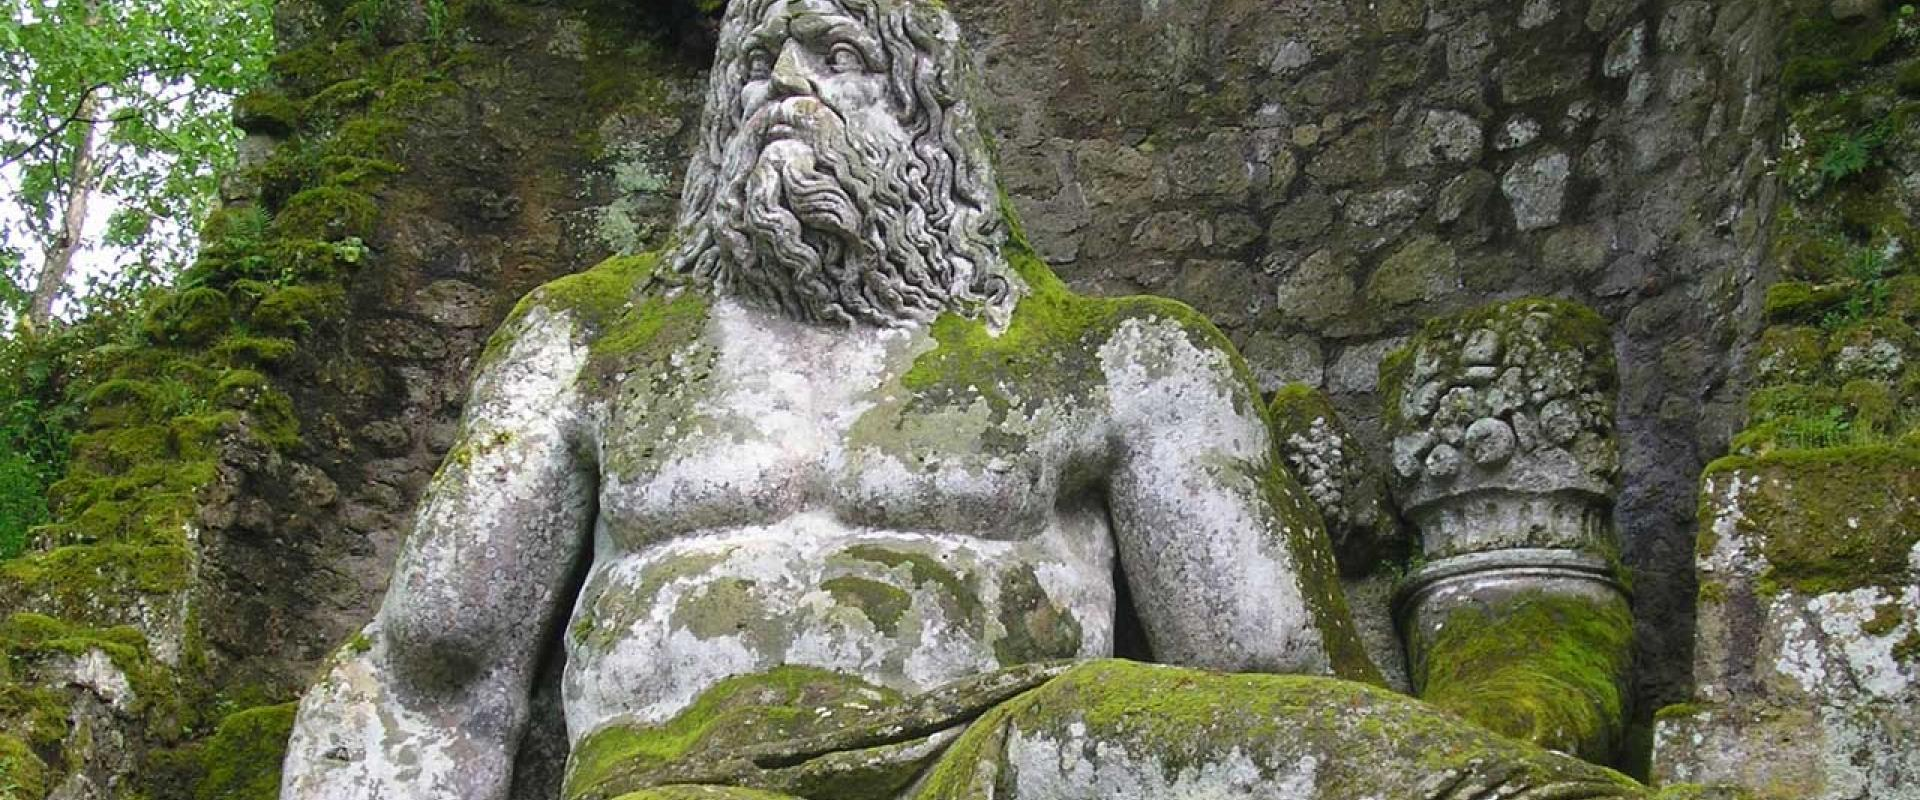 Viist of sacred wood of Bomarzo